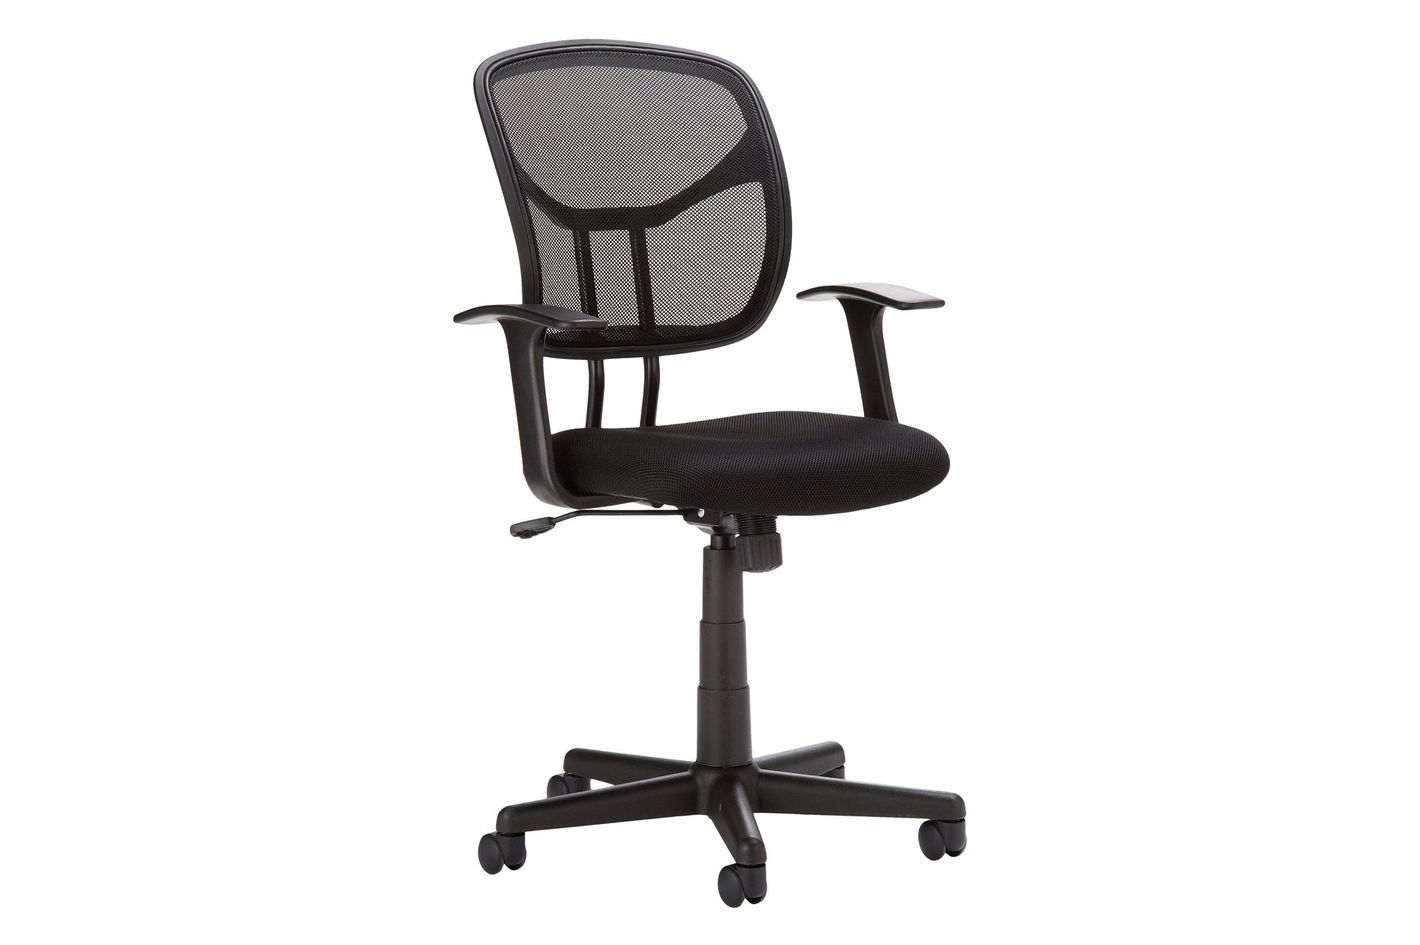 cheap office chairs amazon. AmazonBasics Mid-back Mesh Chair At Amazon Cheap Office Chairs